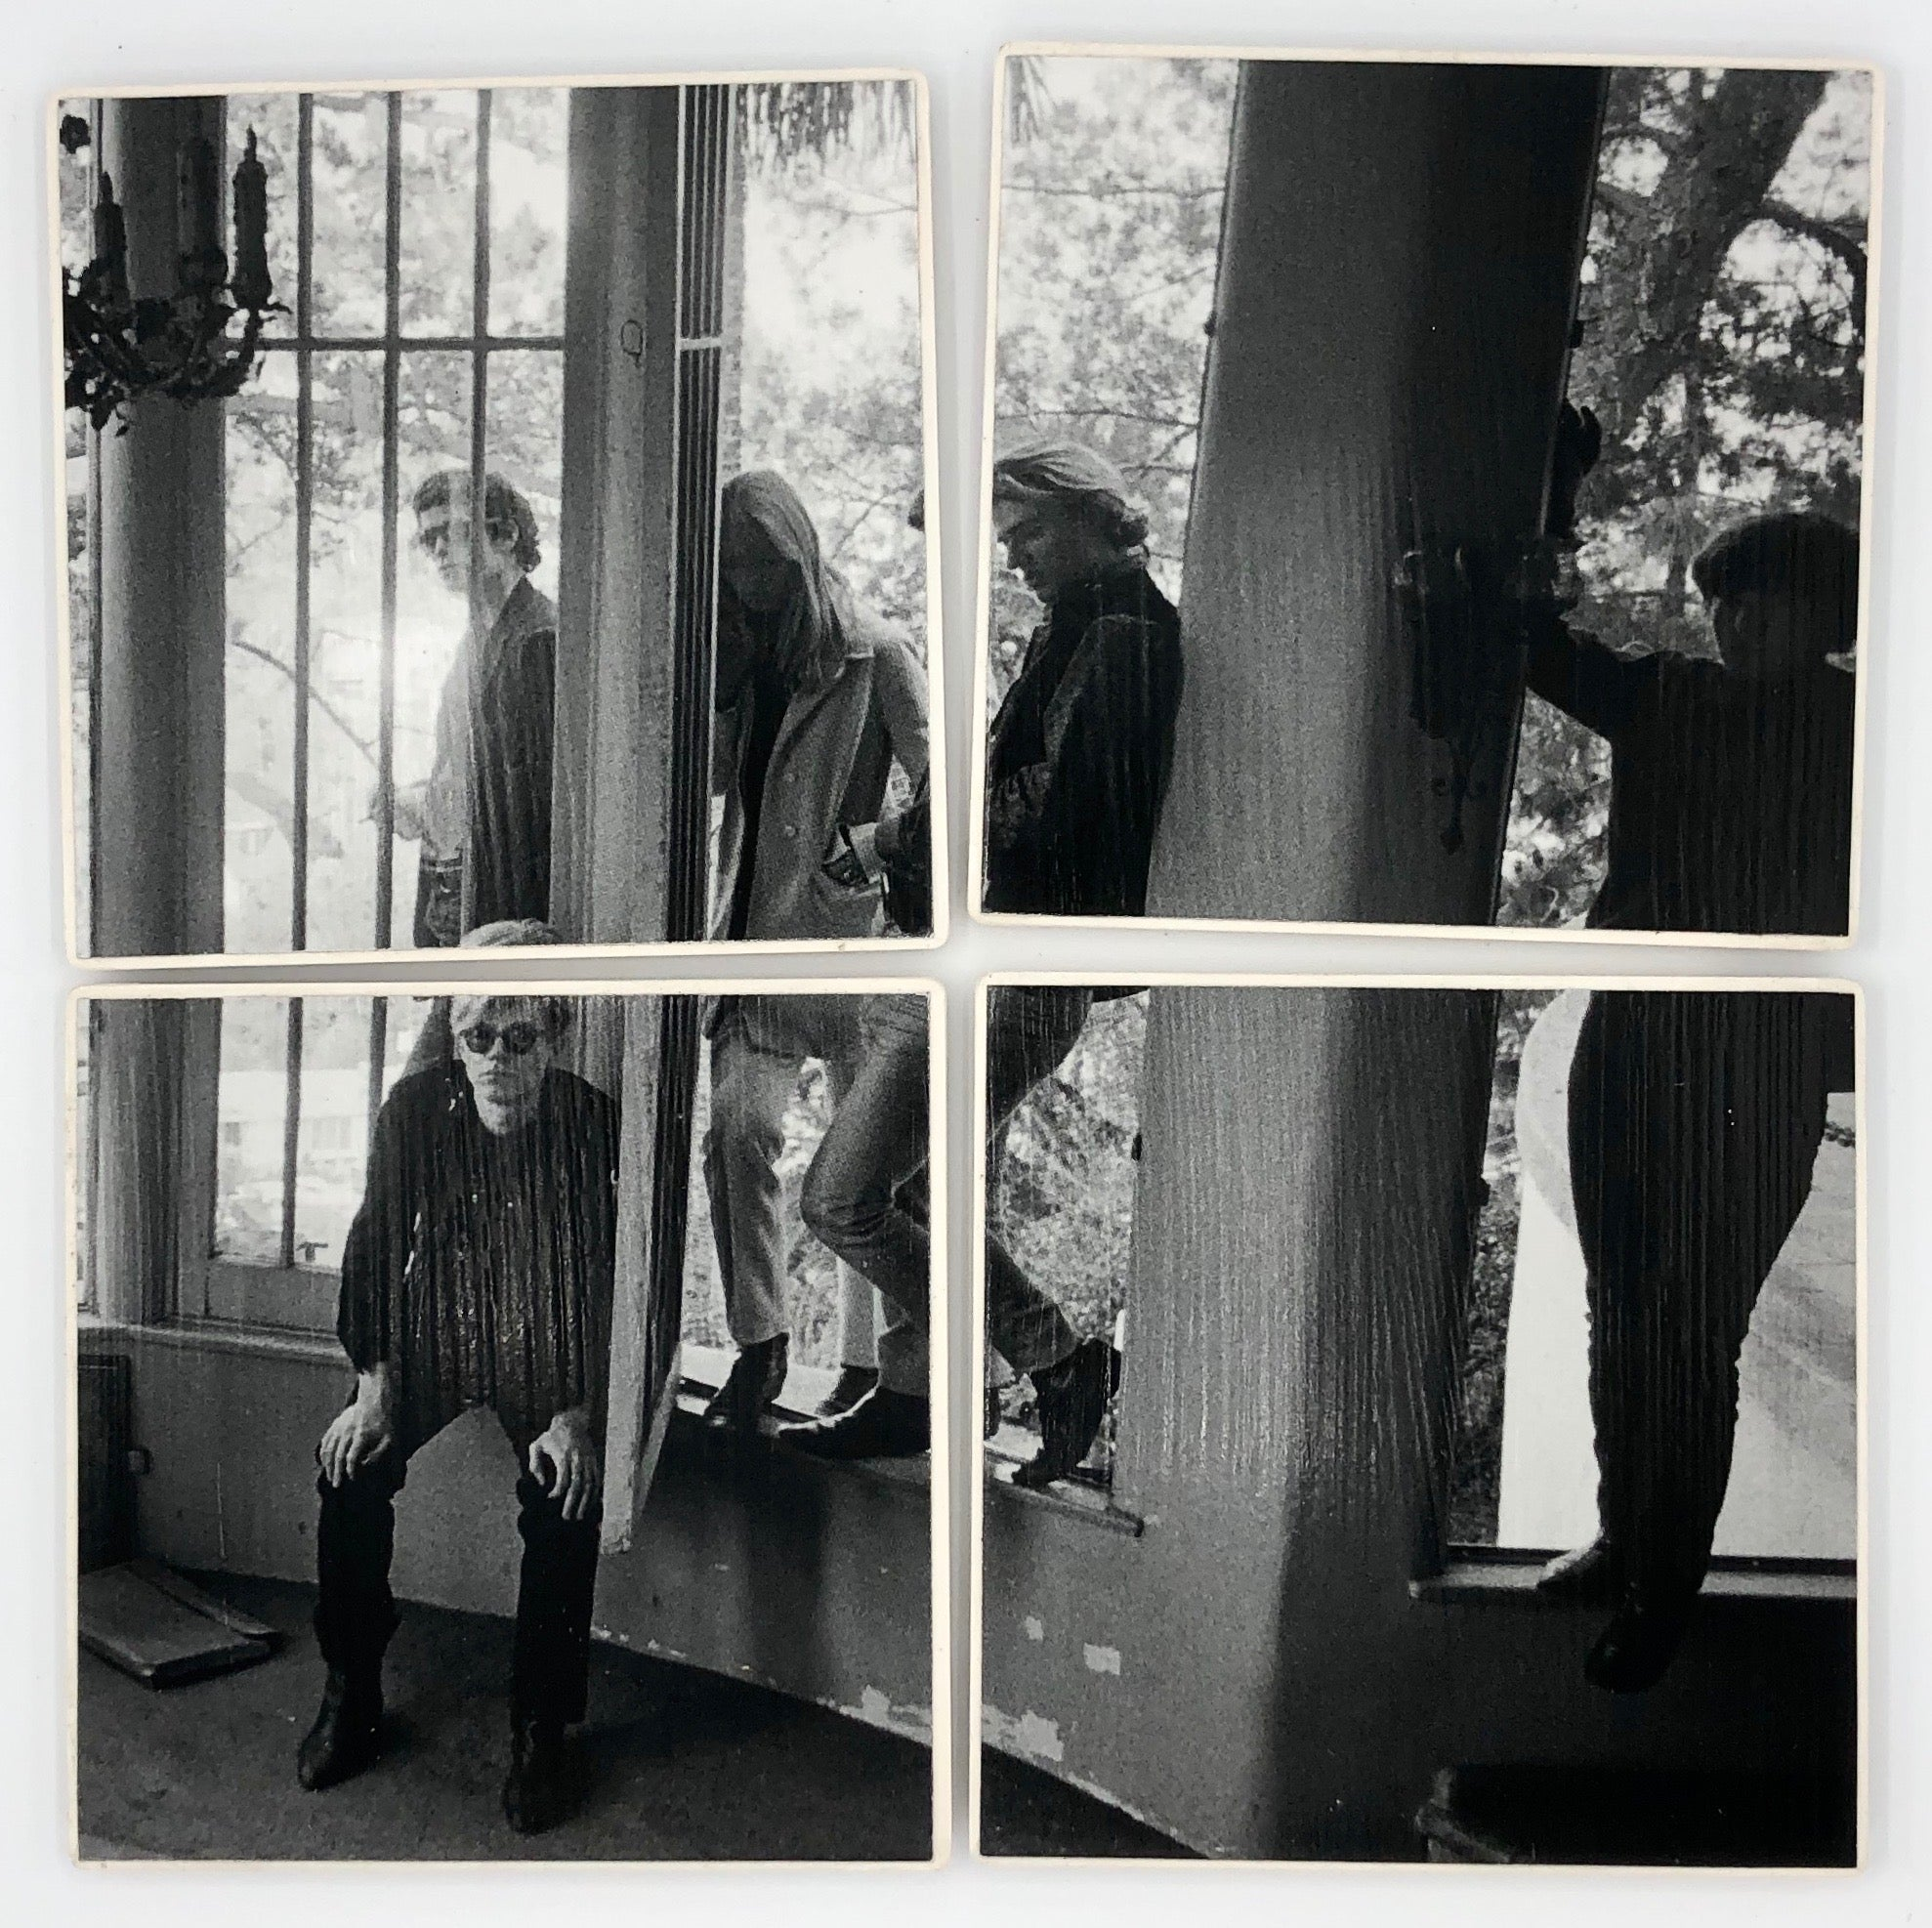 VELVET UNDERGROUND - with Andy Warhol